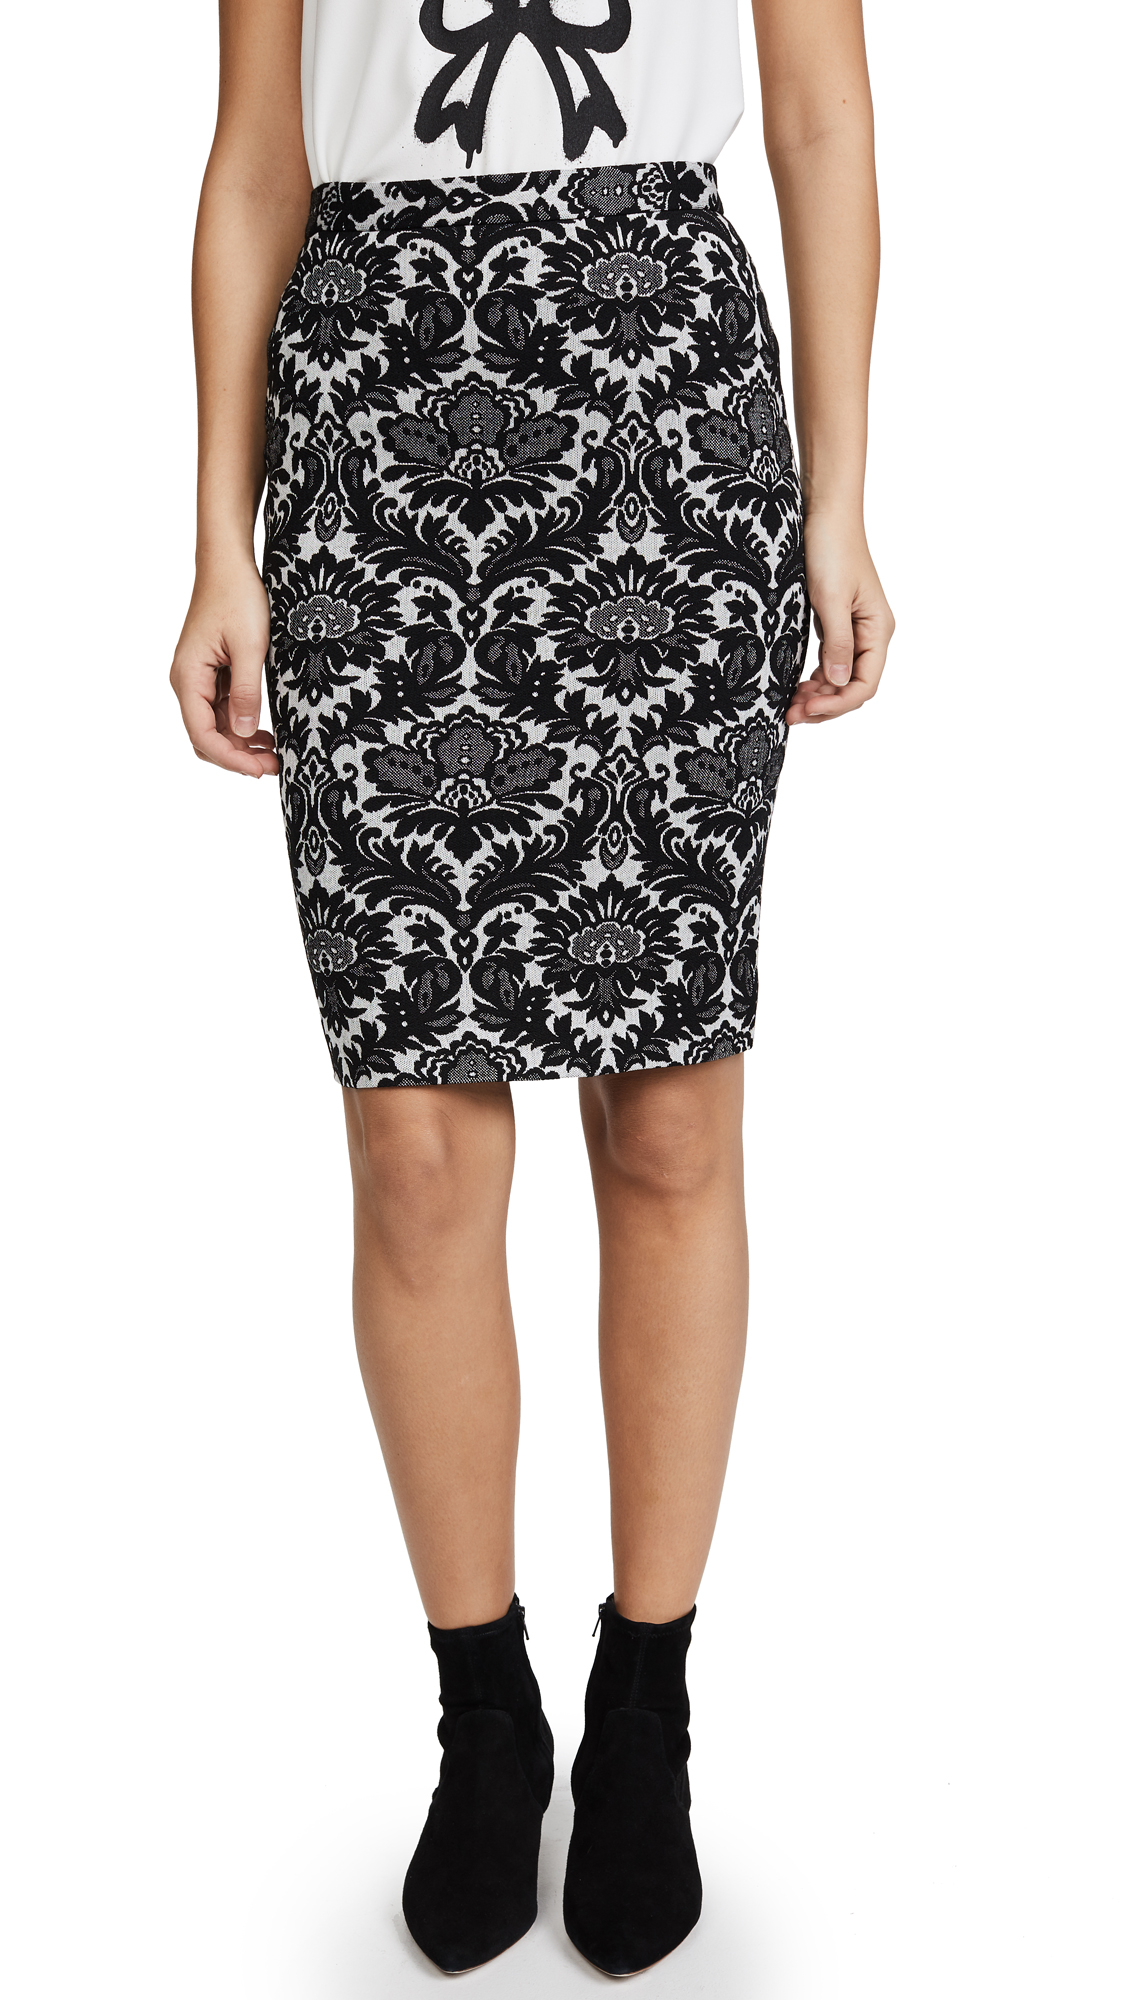 Boutique Moschino Pencil Skirt - Black Multi